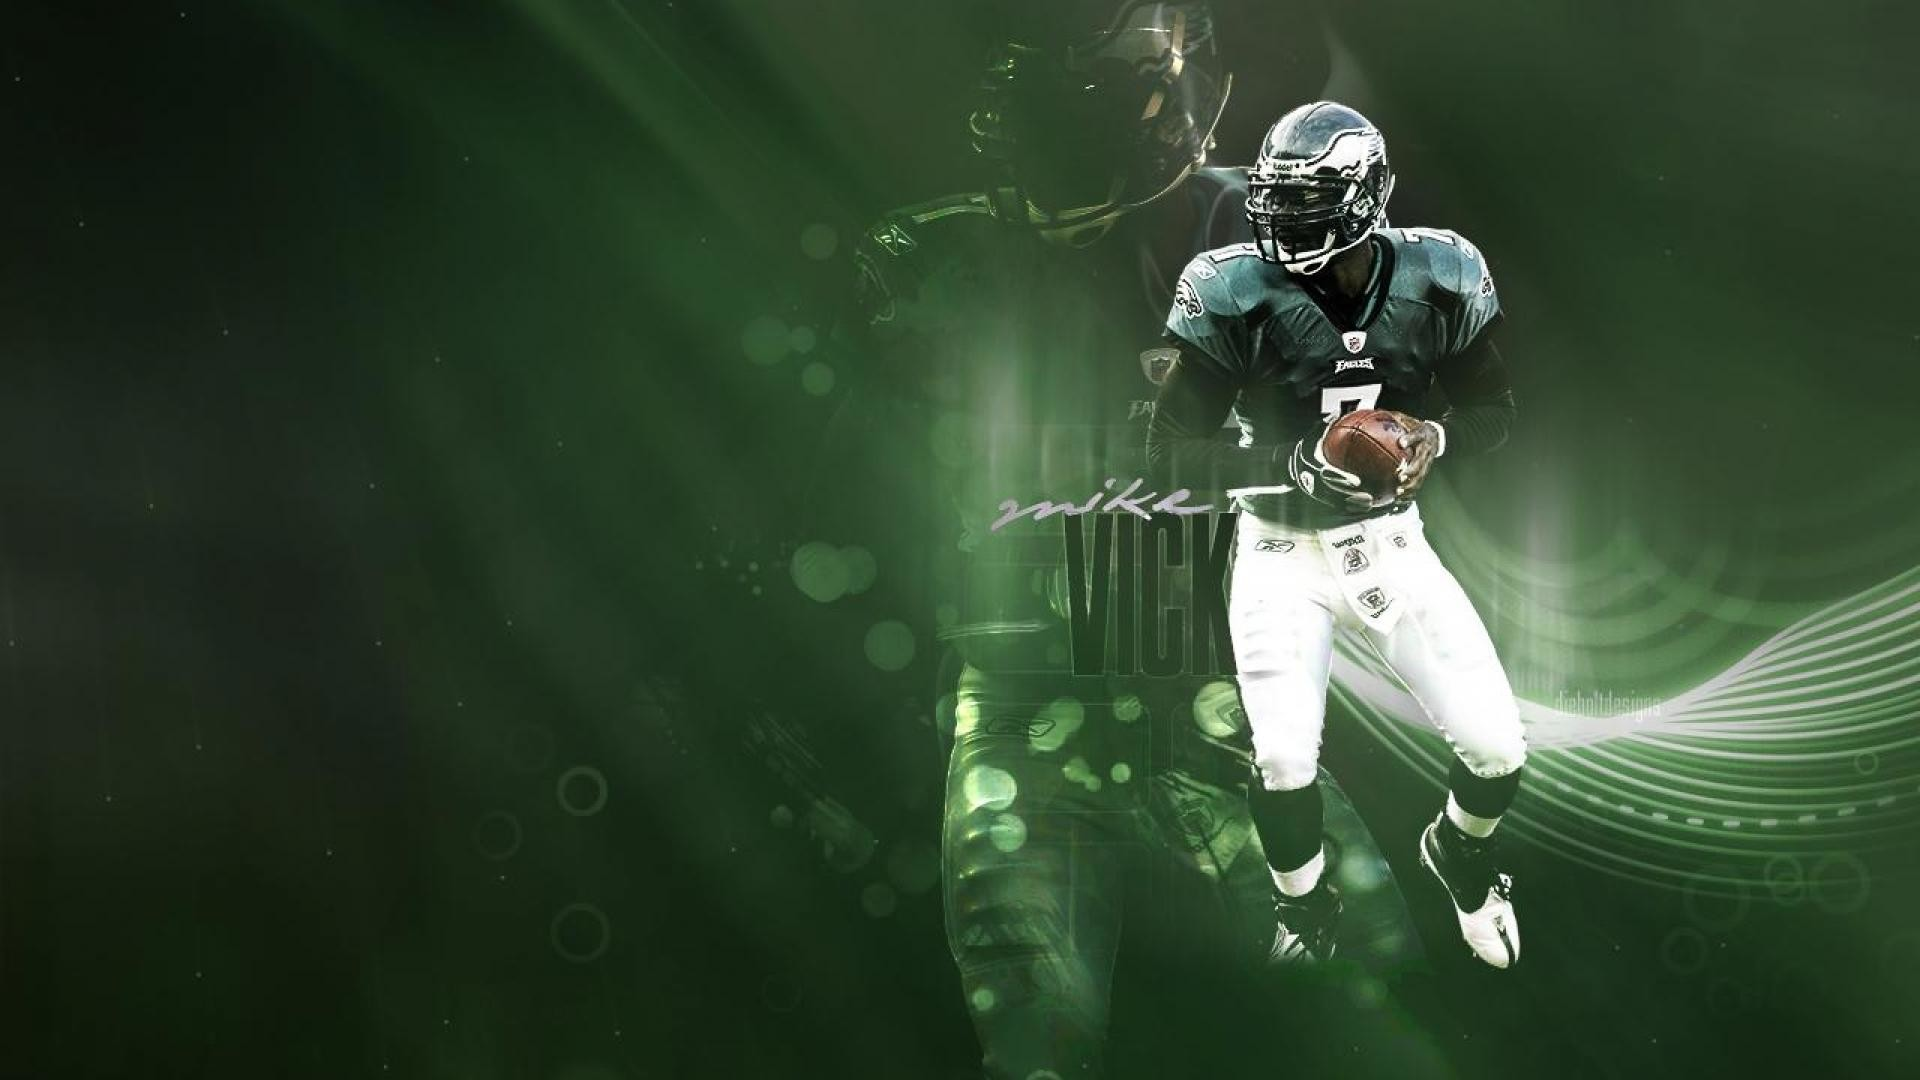 1920x1080 philadelphia eagles qb wallpaper - (#87724) - HQ Desktop Wallpapers .